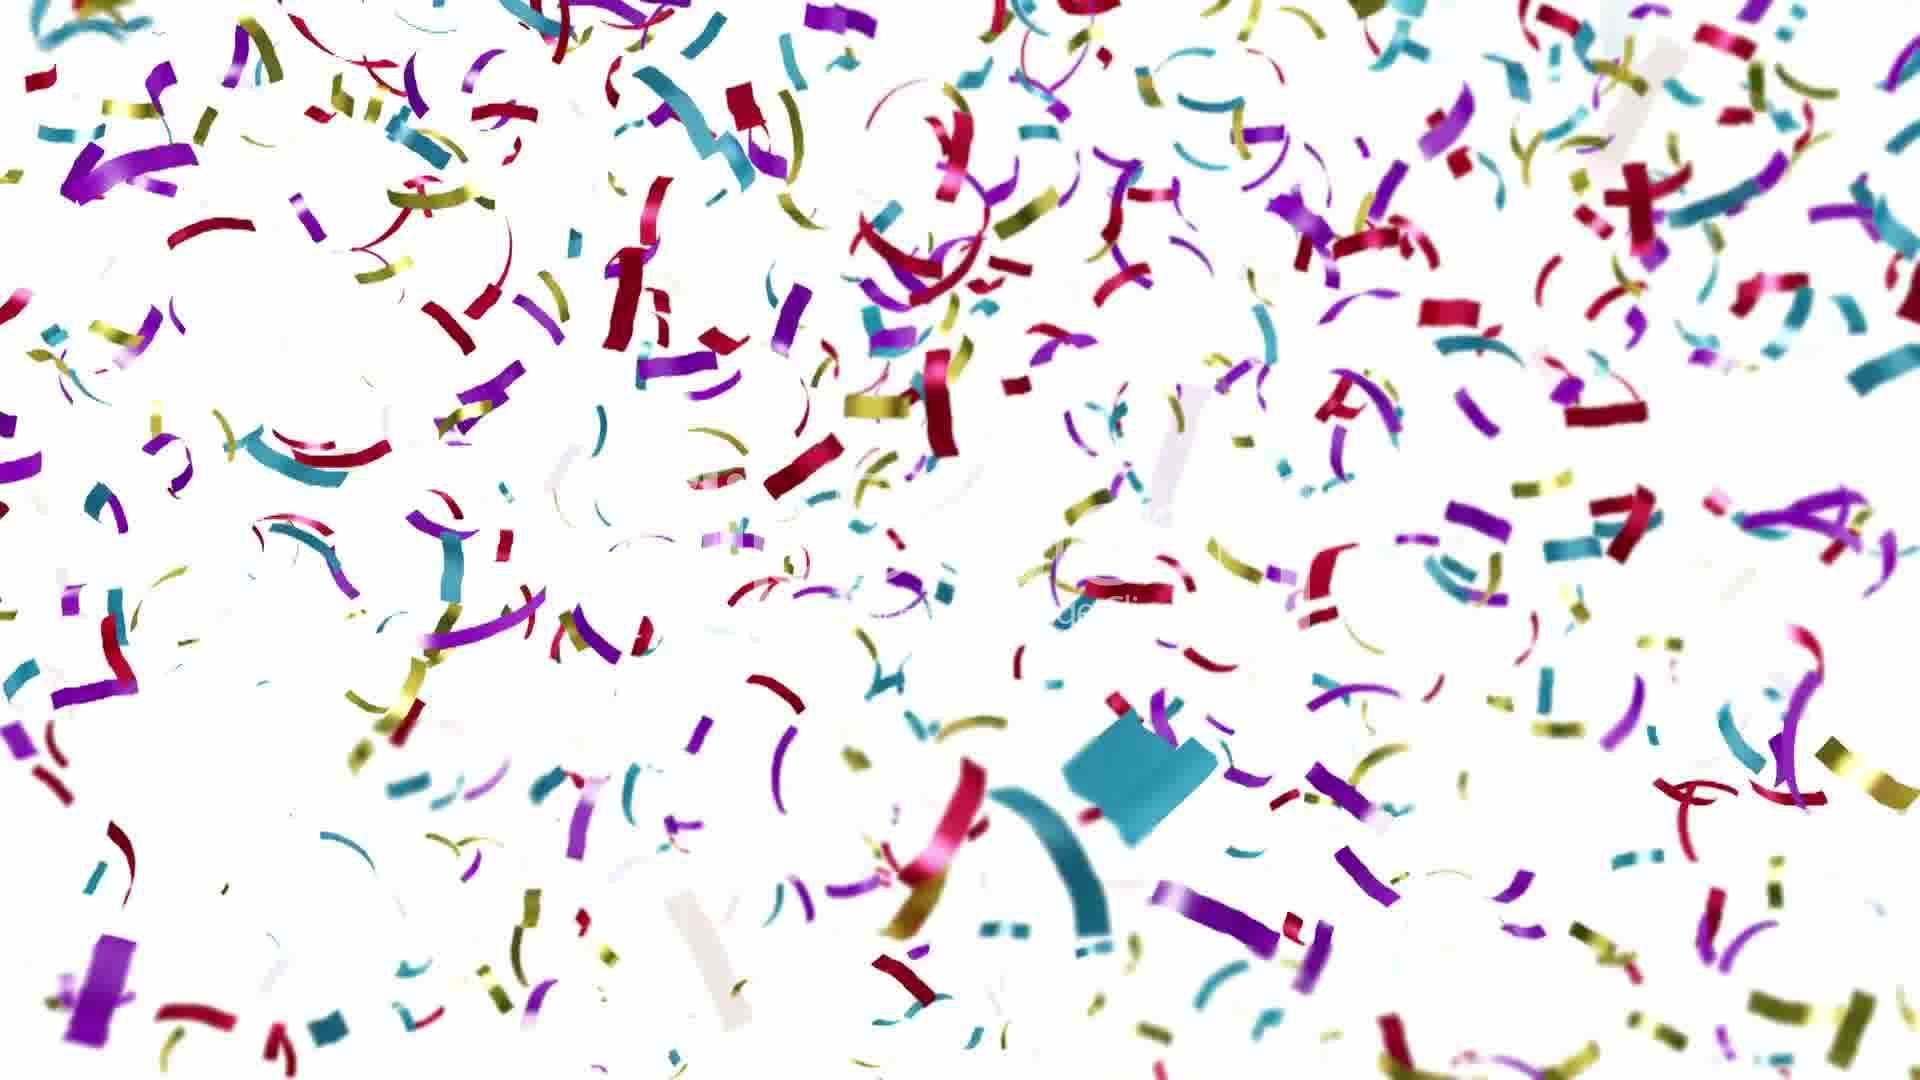 25--1689069-Loopable%20clip%20of%20colorful%20confetti%20falling.jpg